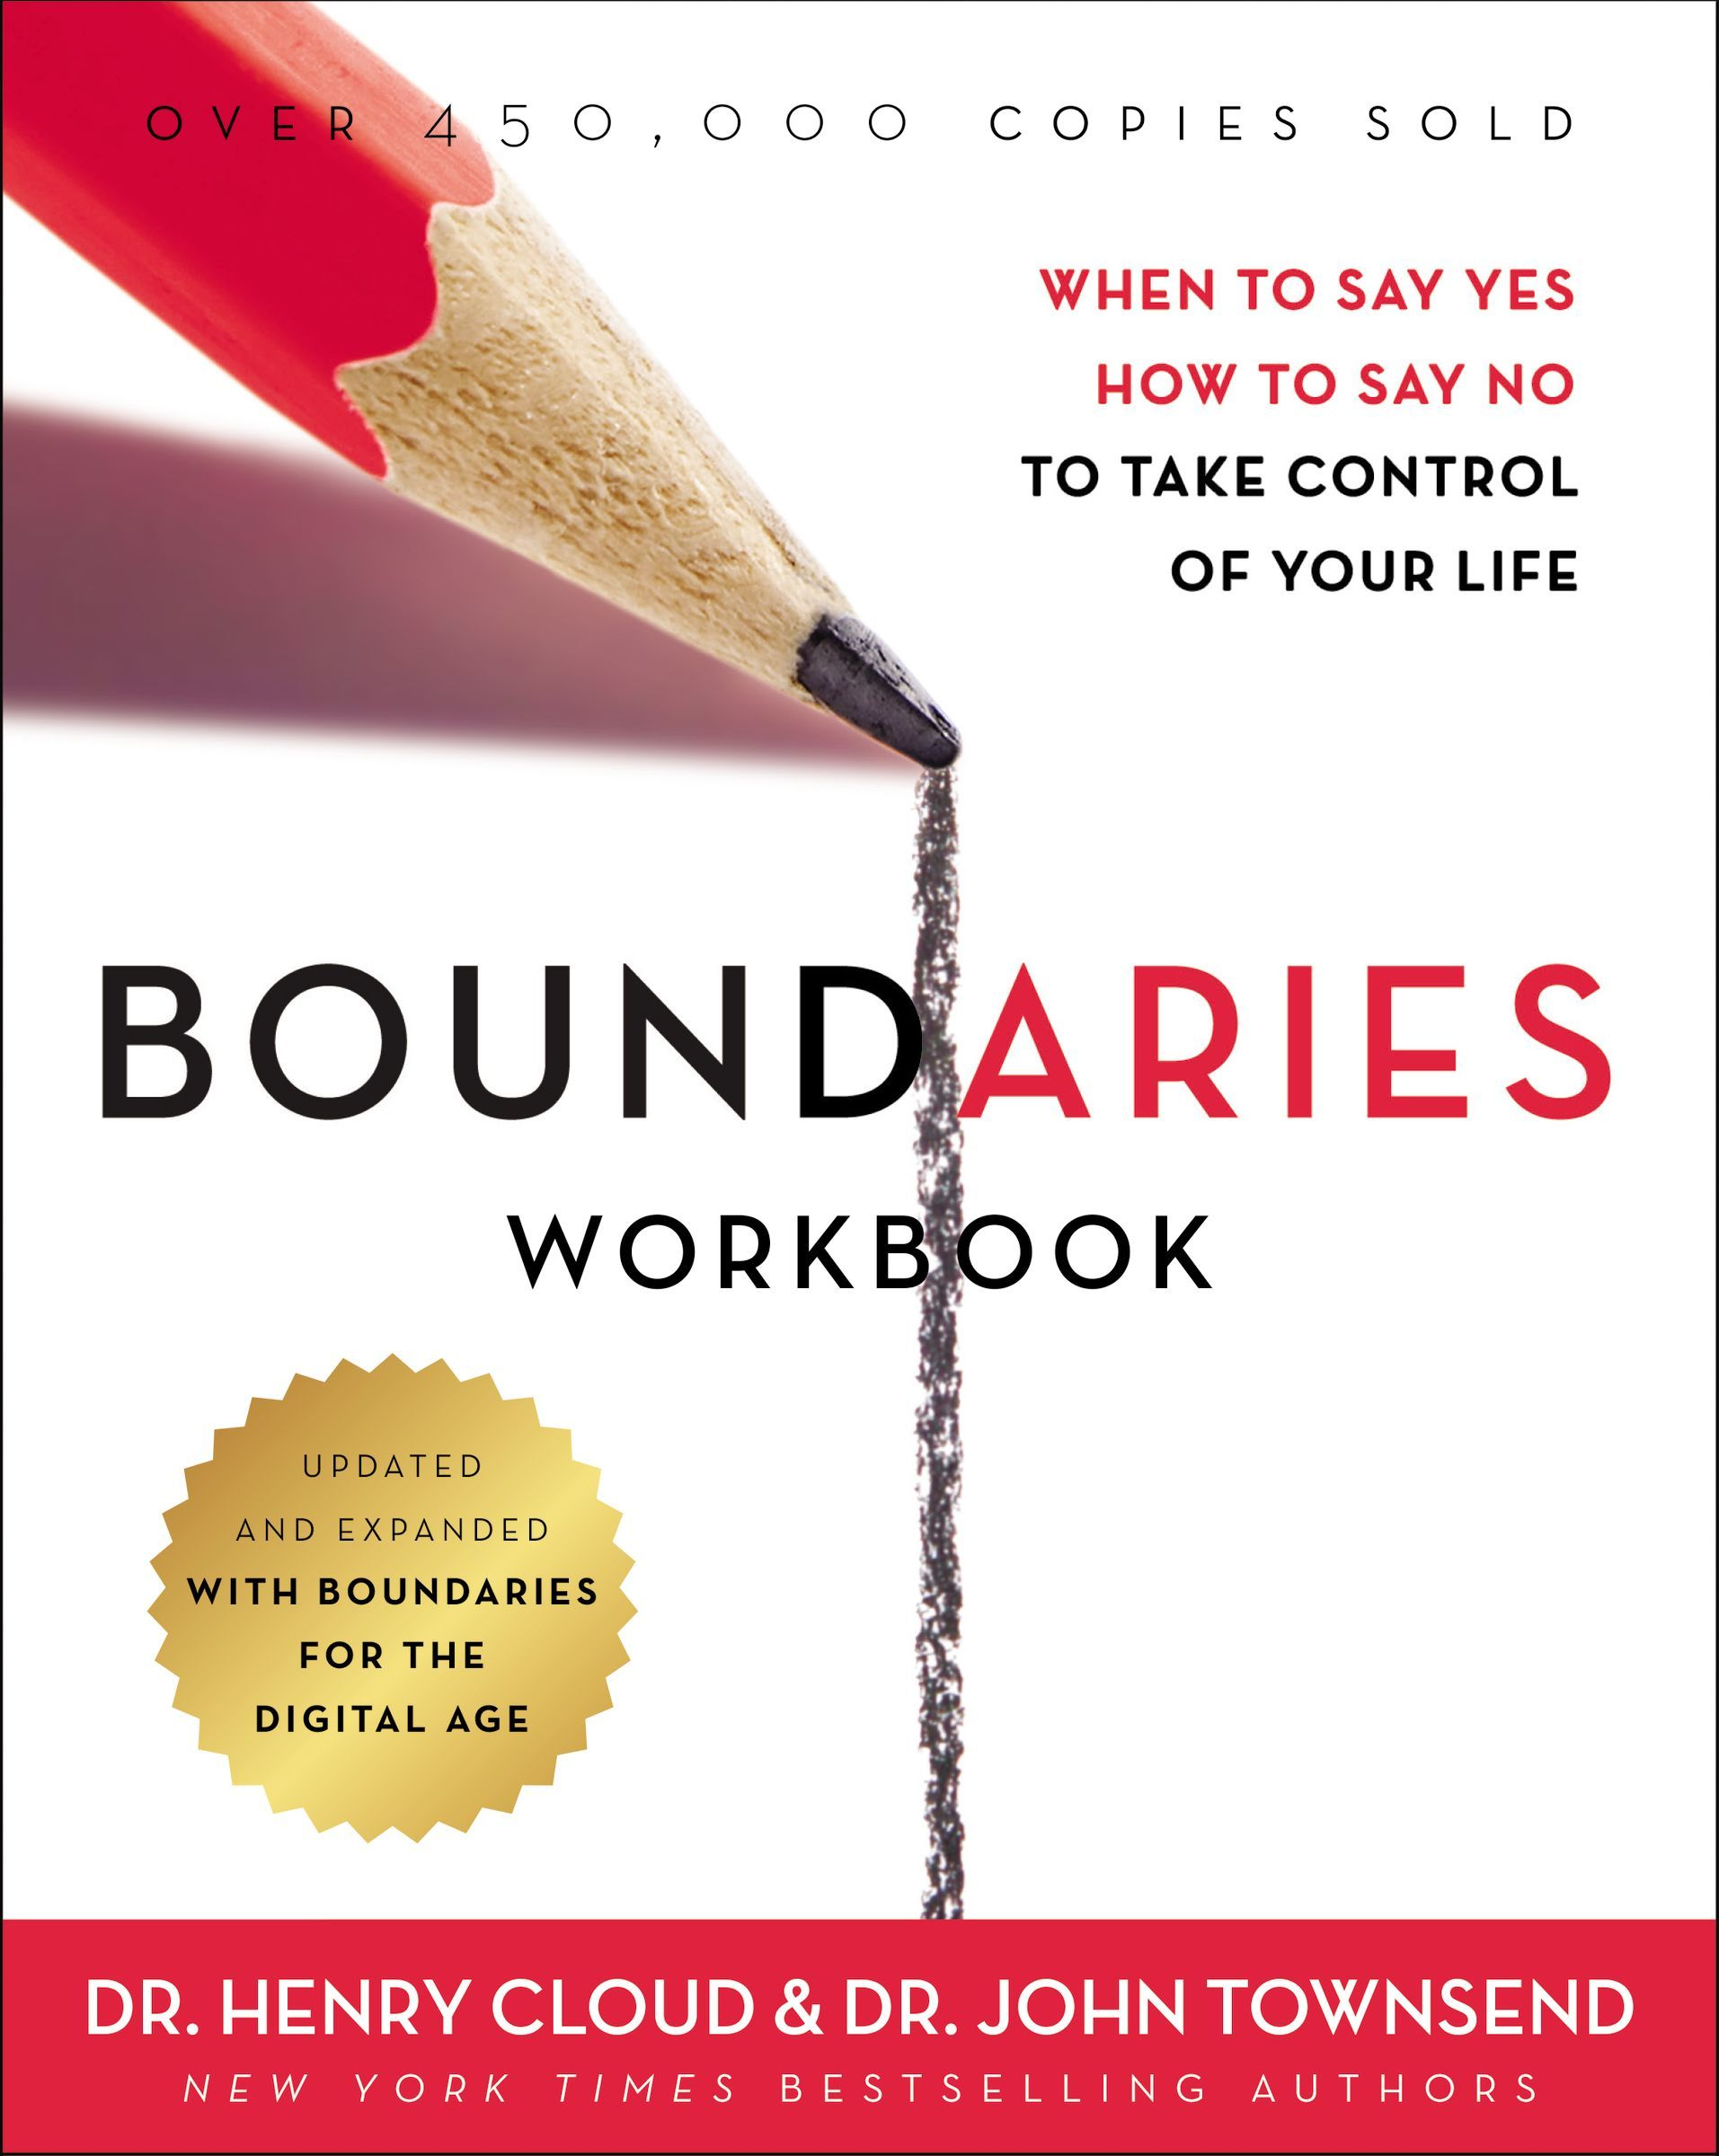 Boundaries Workbook When to Say Yes When to Say No To Take Control of Your Life by Henry Cloud, John Townsend